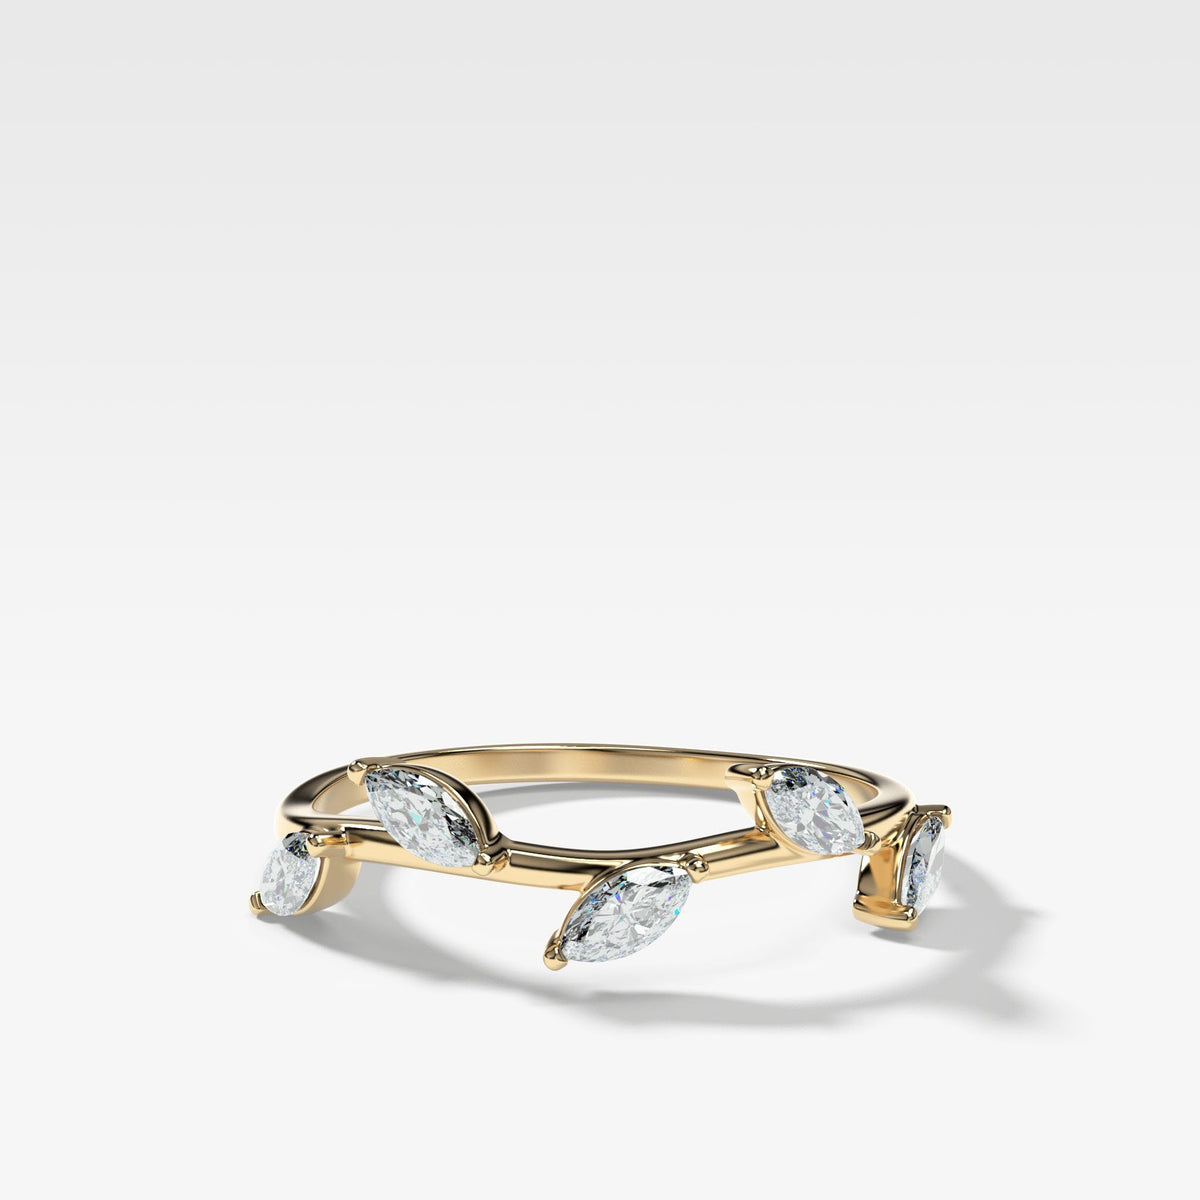 Laurel Marquise Wedding Band available in Gold and Platinum by Good Stone